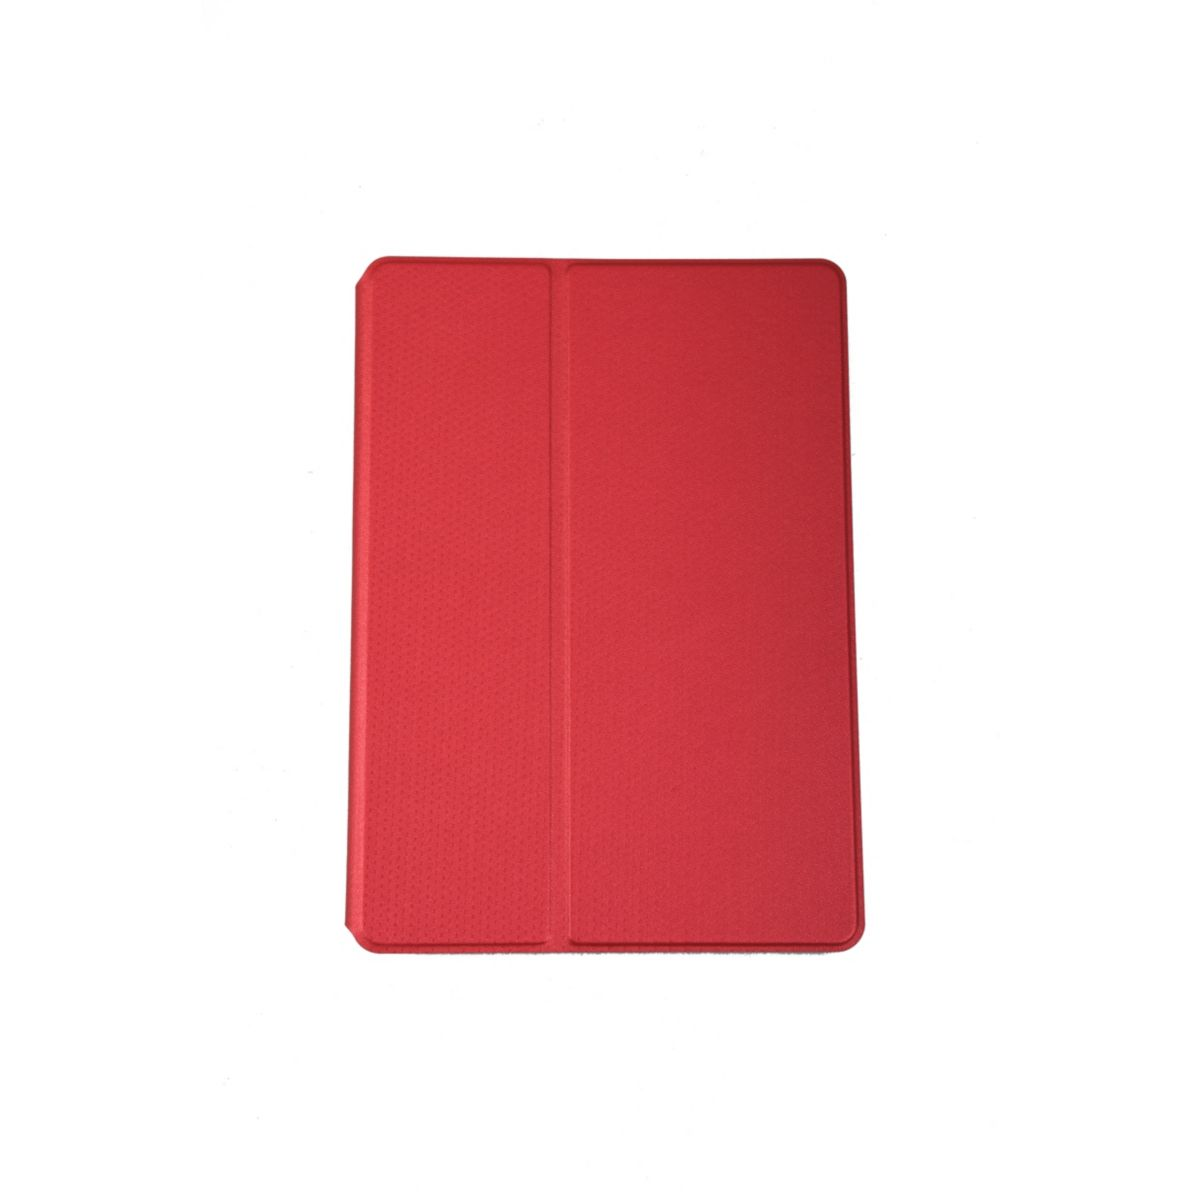 Etui ESSENTIELB iPad Air/ Air 2 rotatif Rouge (photo)